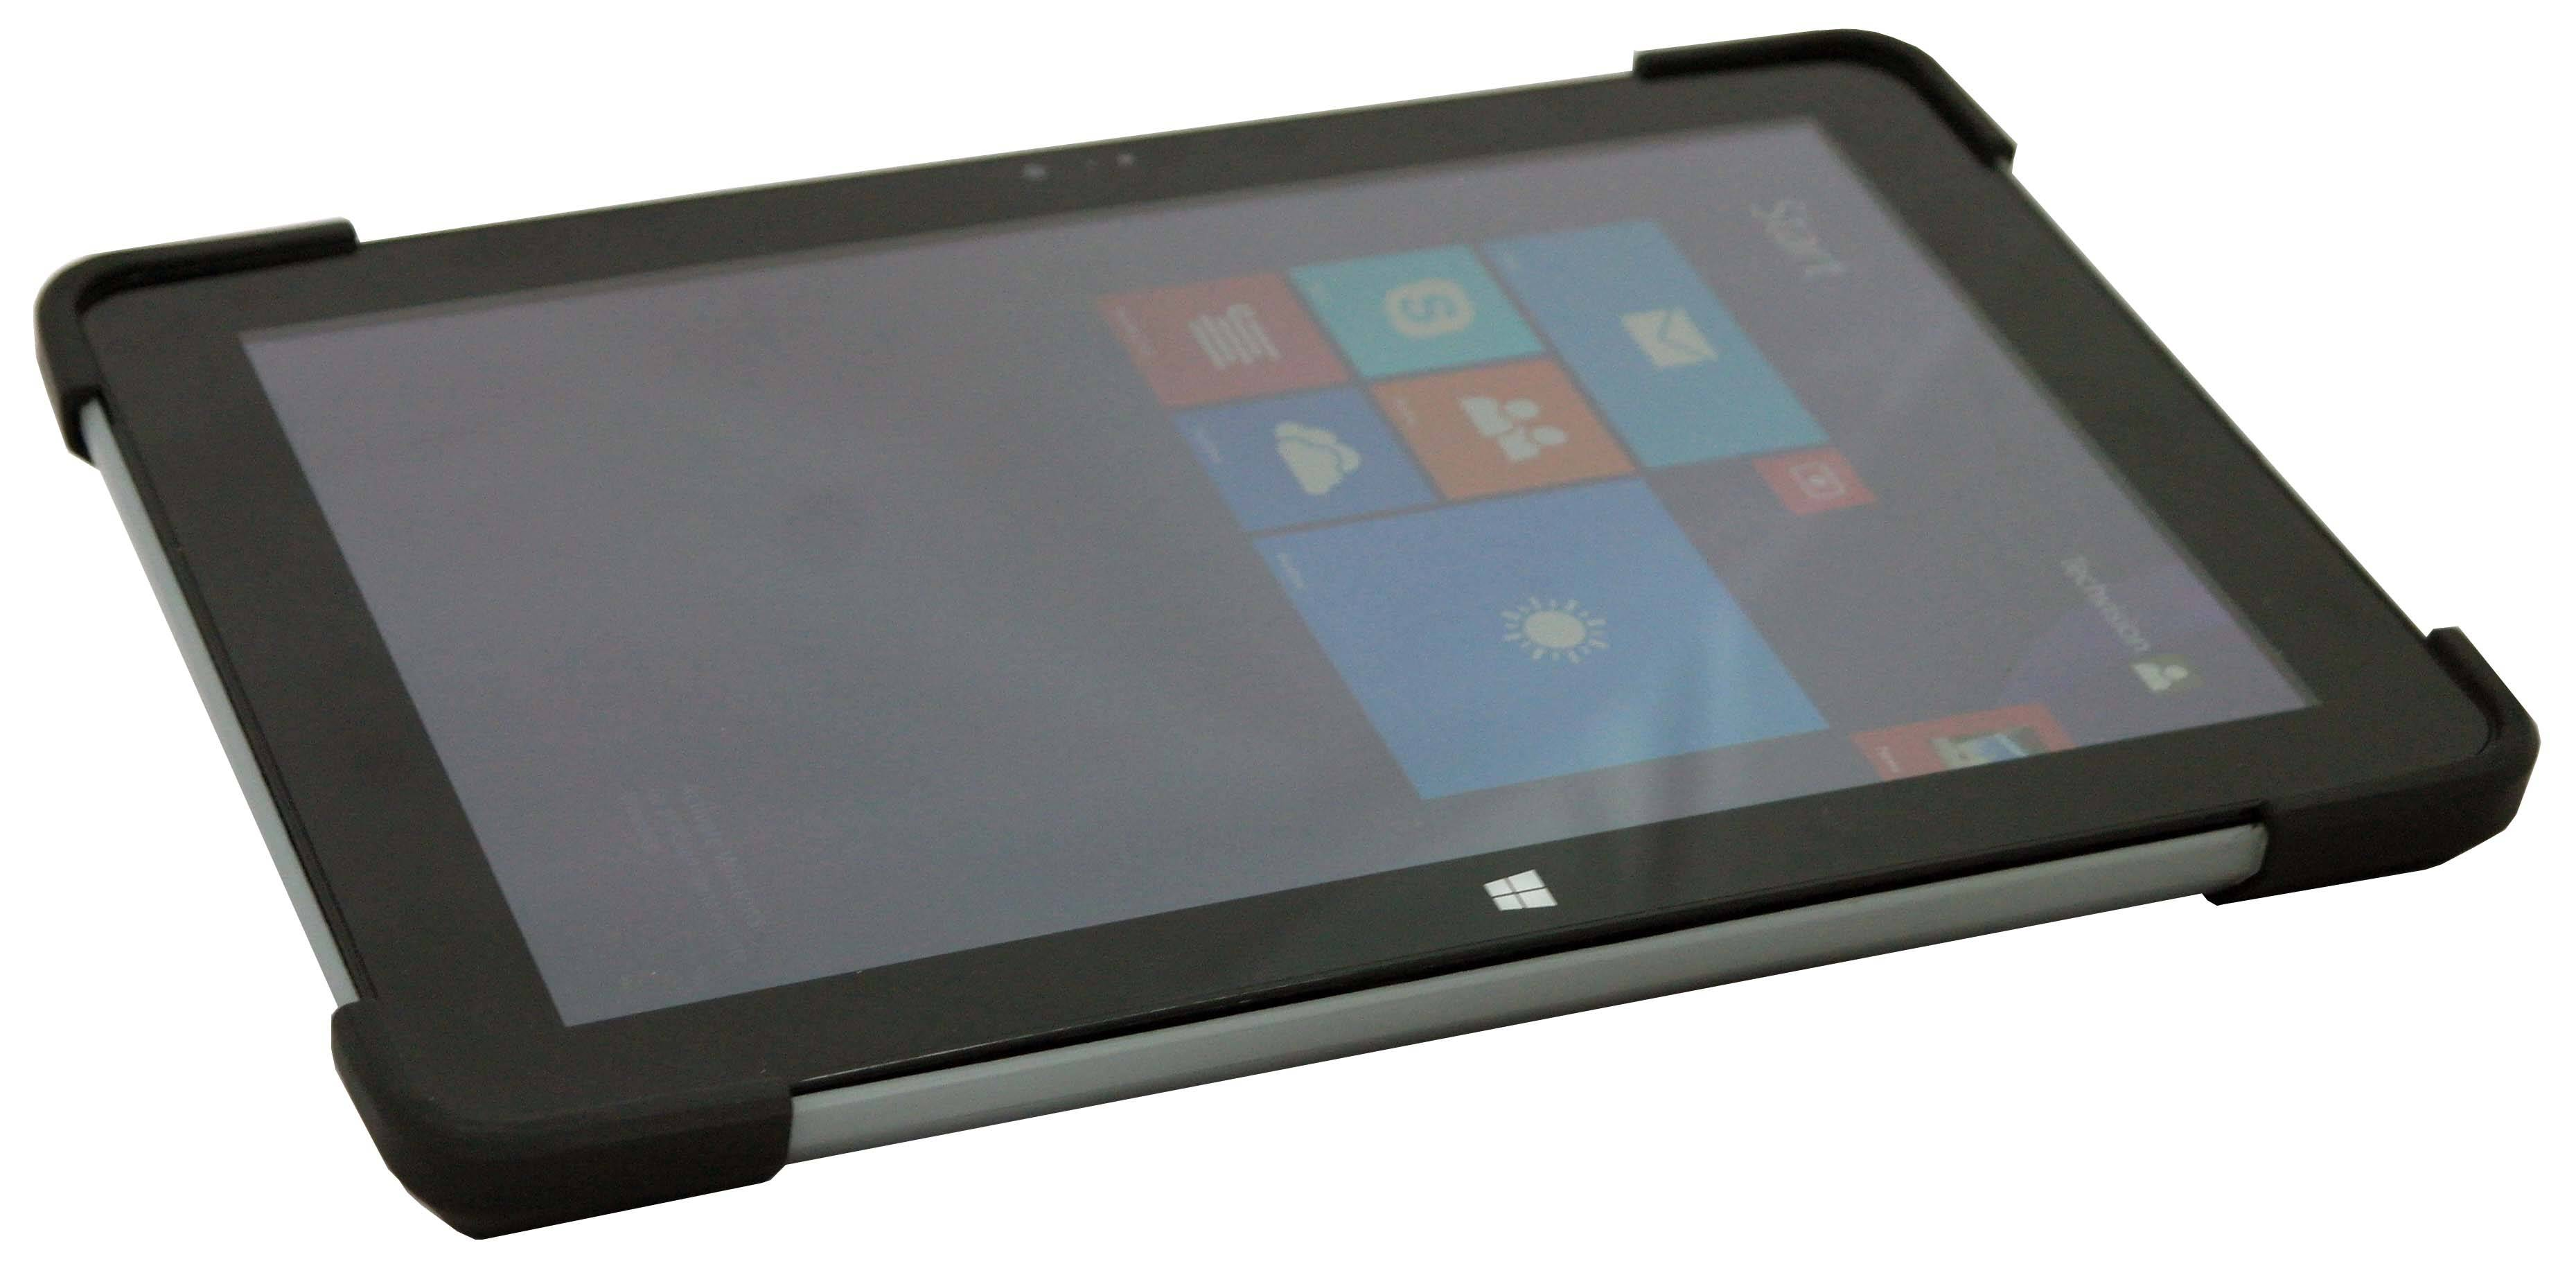 PADPOS Mobile Tablet POS